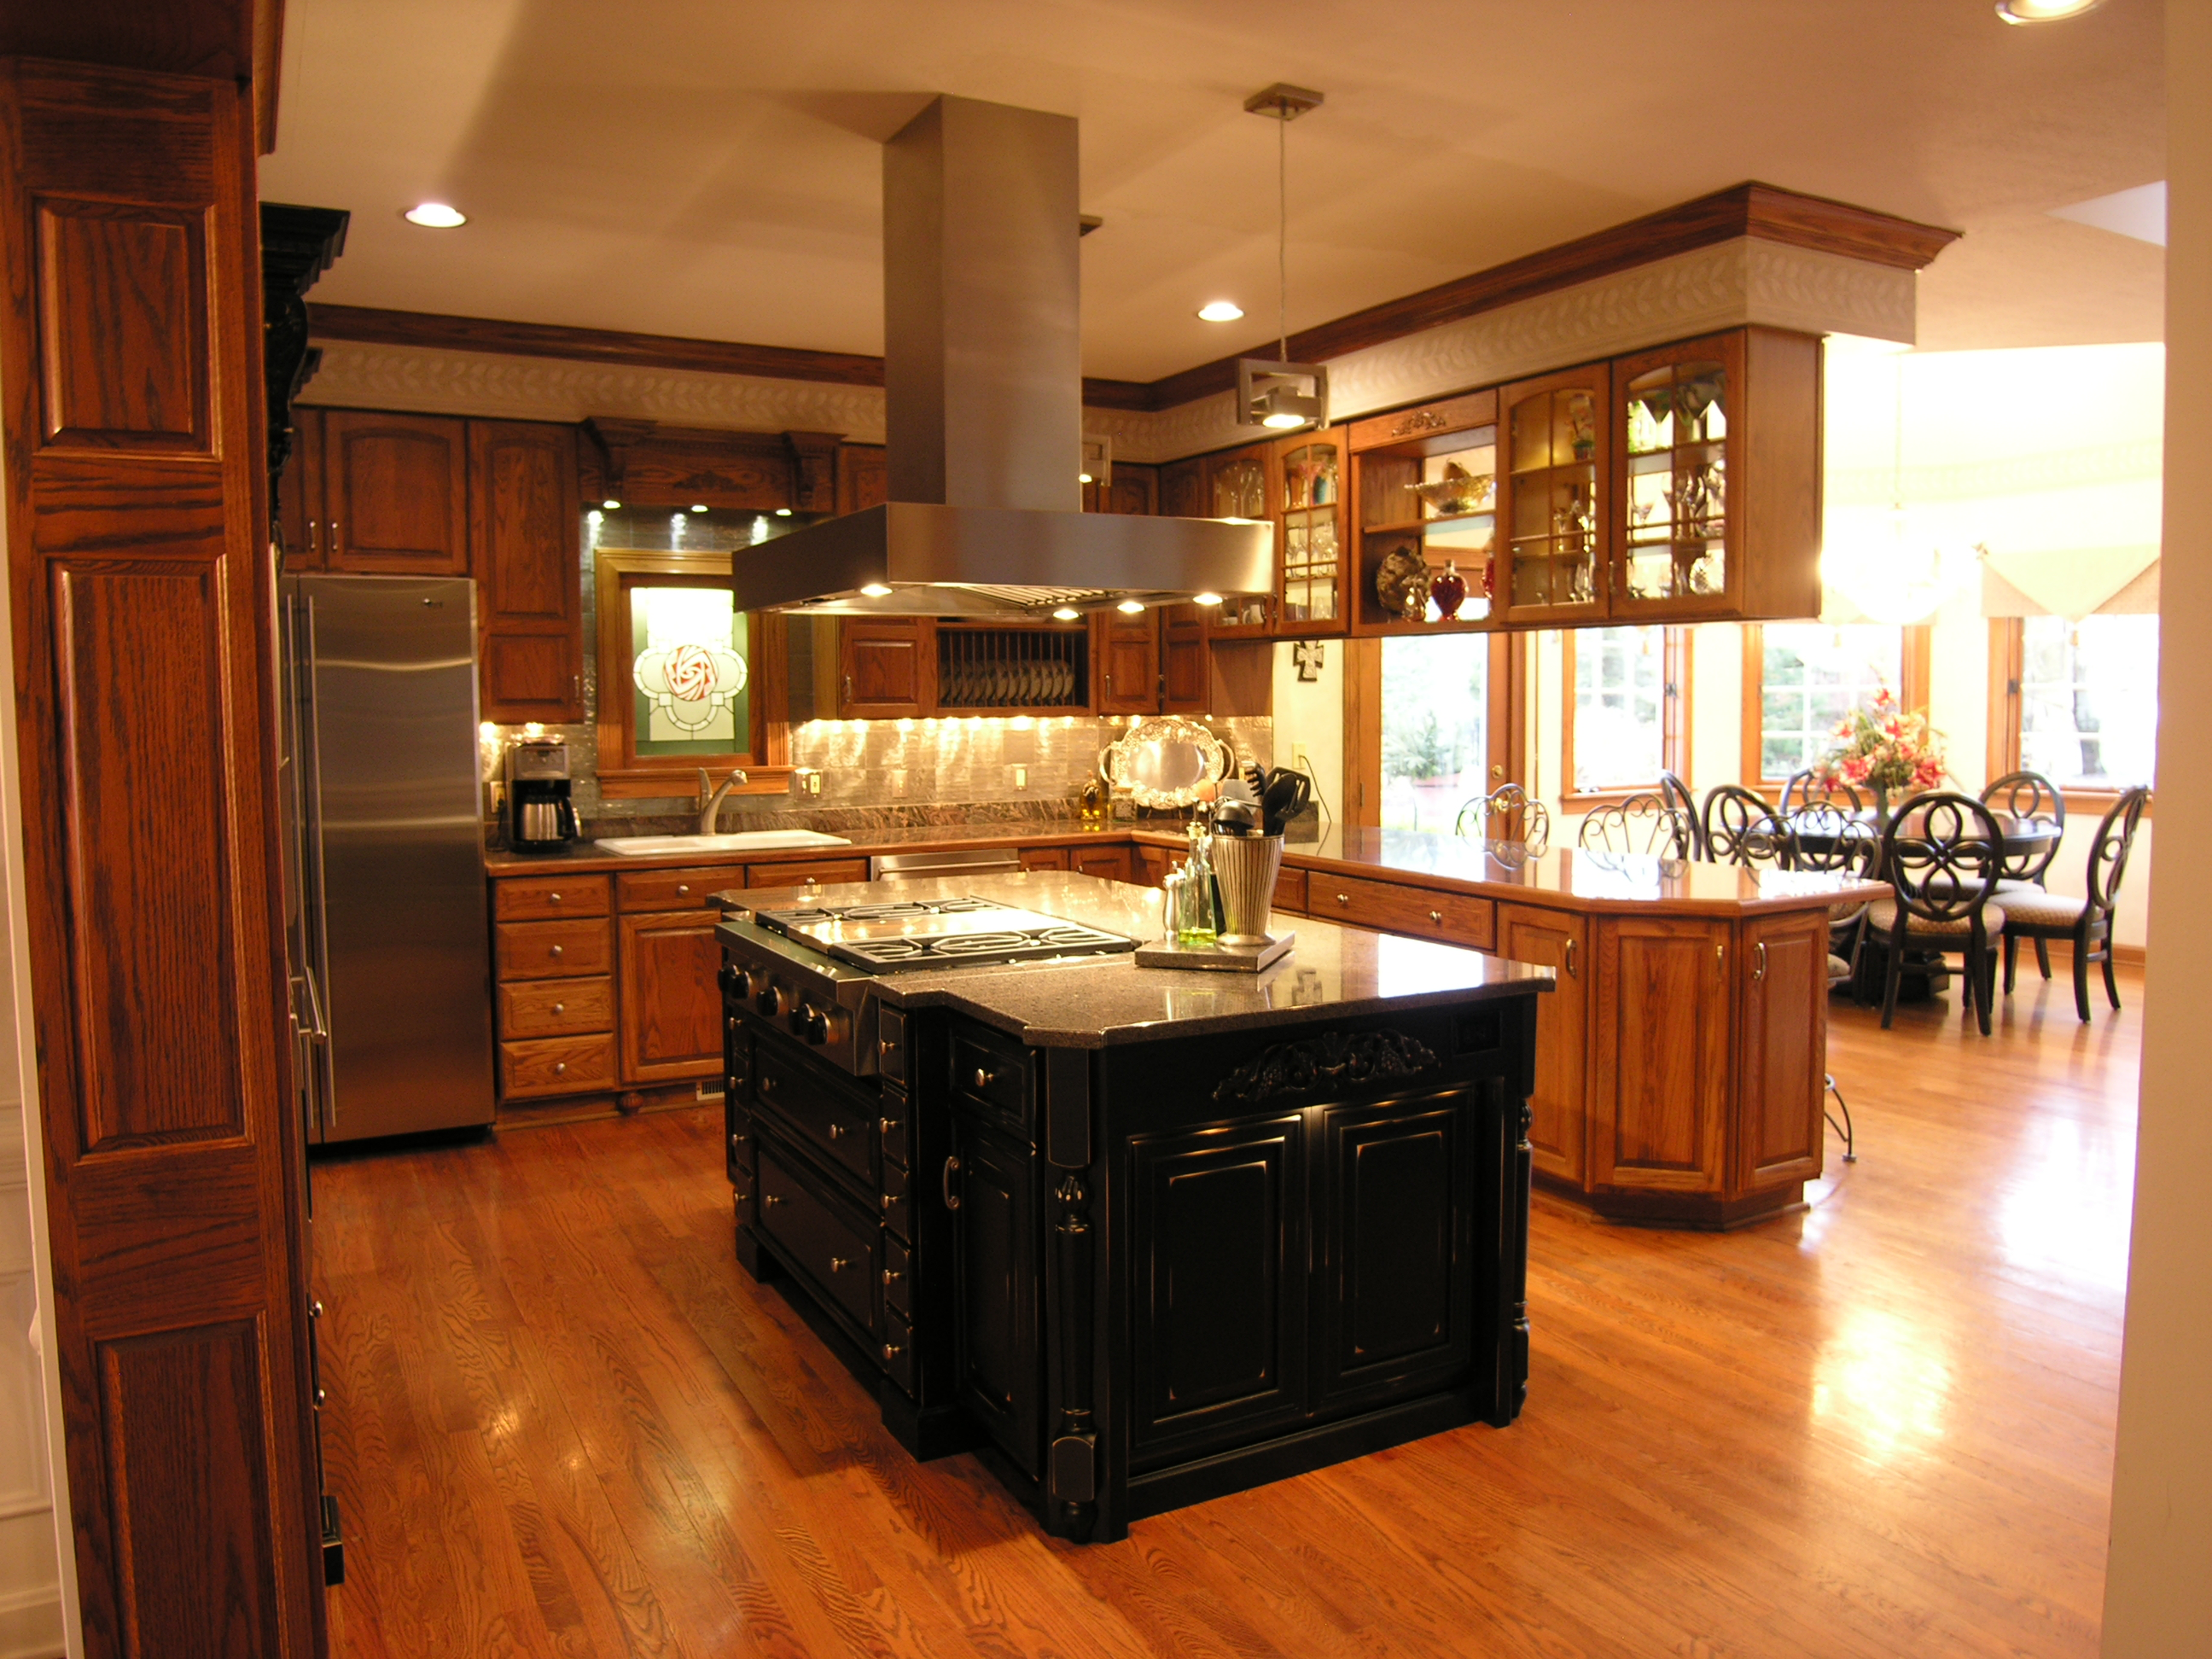 Kitchen island hood rmd designs llc for Show me kitchen designs